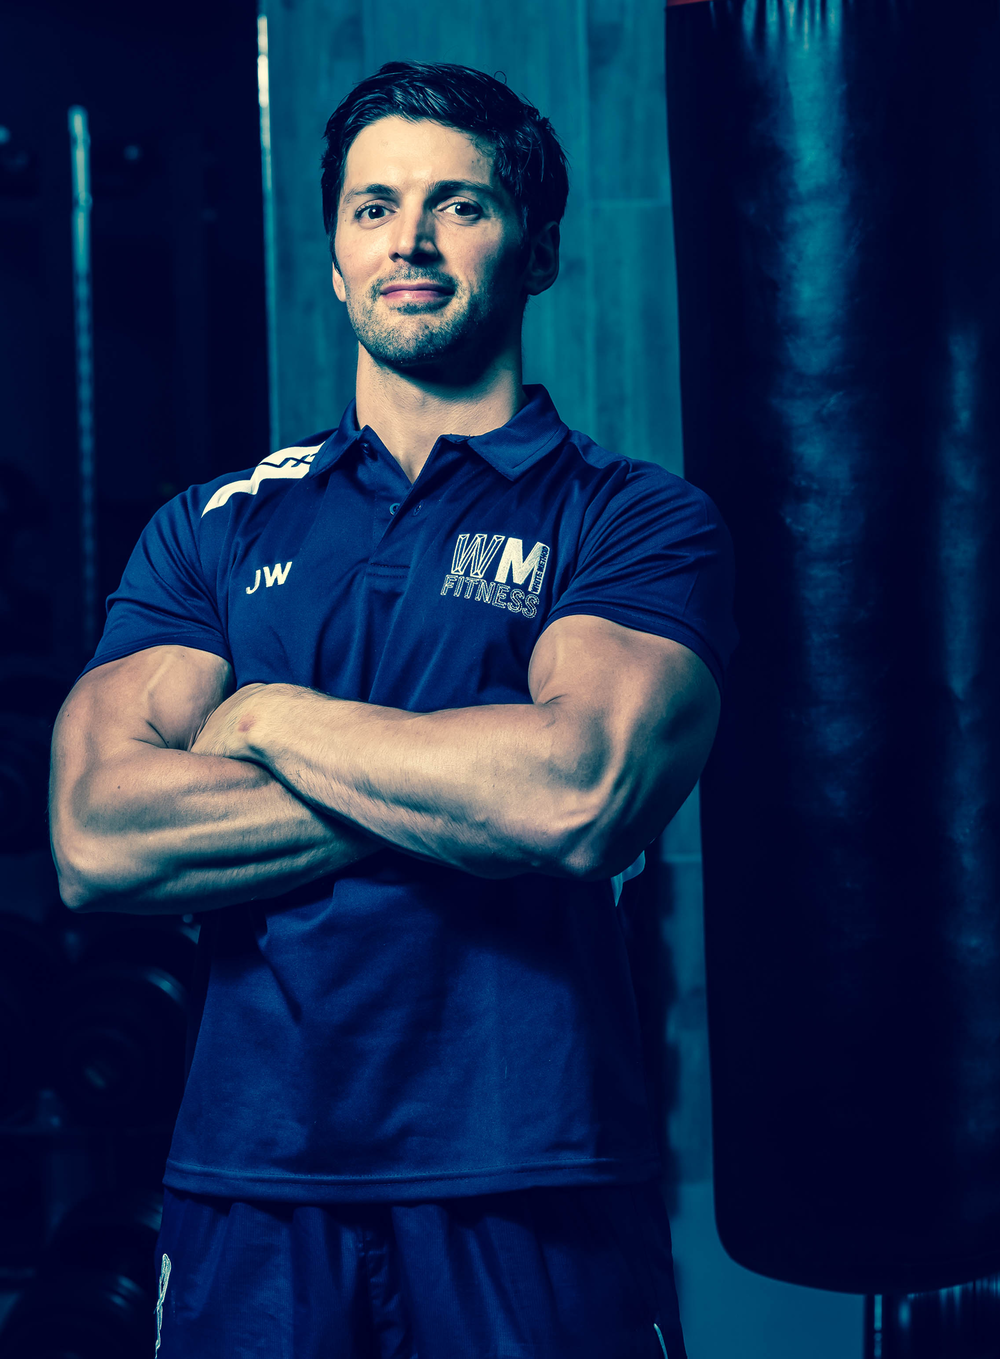 Hi I'm Jonathan - I'm a Glasgow personal trainer, body composition expert and the founder of White Method Fitness. I've spend almost two decades getting the results people have been desperately trying for. Most having trained for years by themselves with little results to show for their efforts. Or others who know what changes they need to make, but struggle to stay motivated and focused.